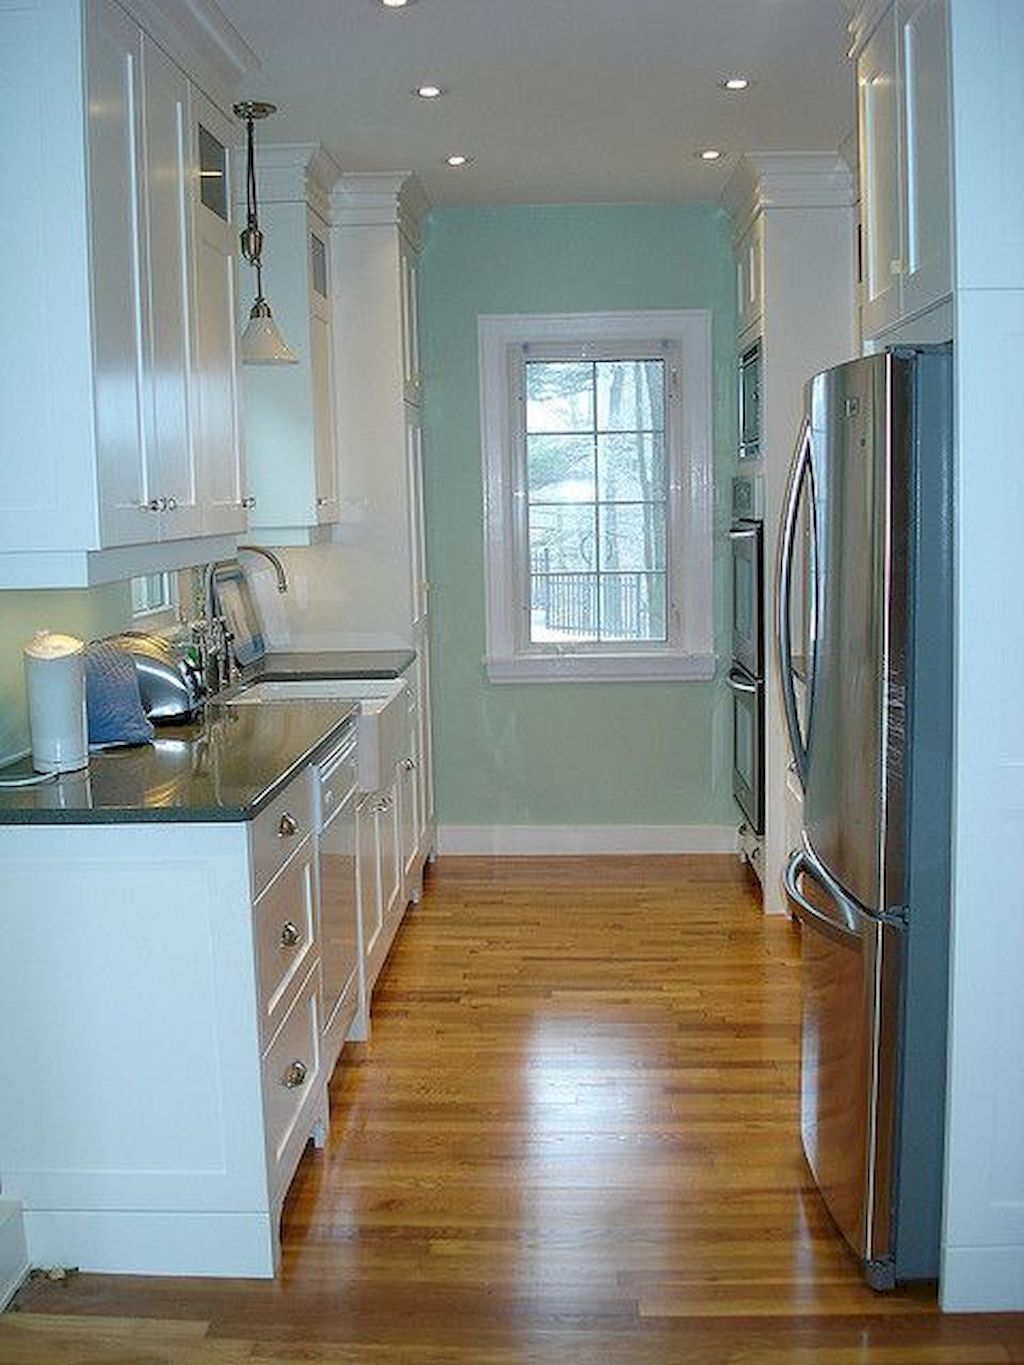 Kitchen Plan And Design For Small Room (170)